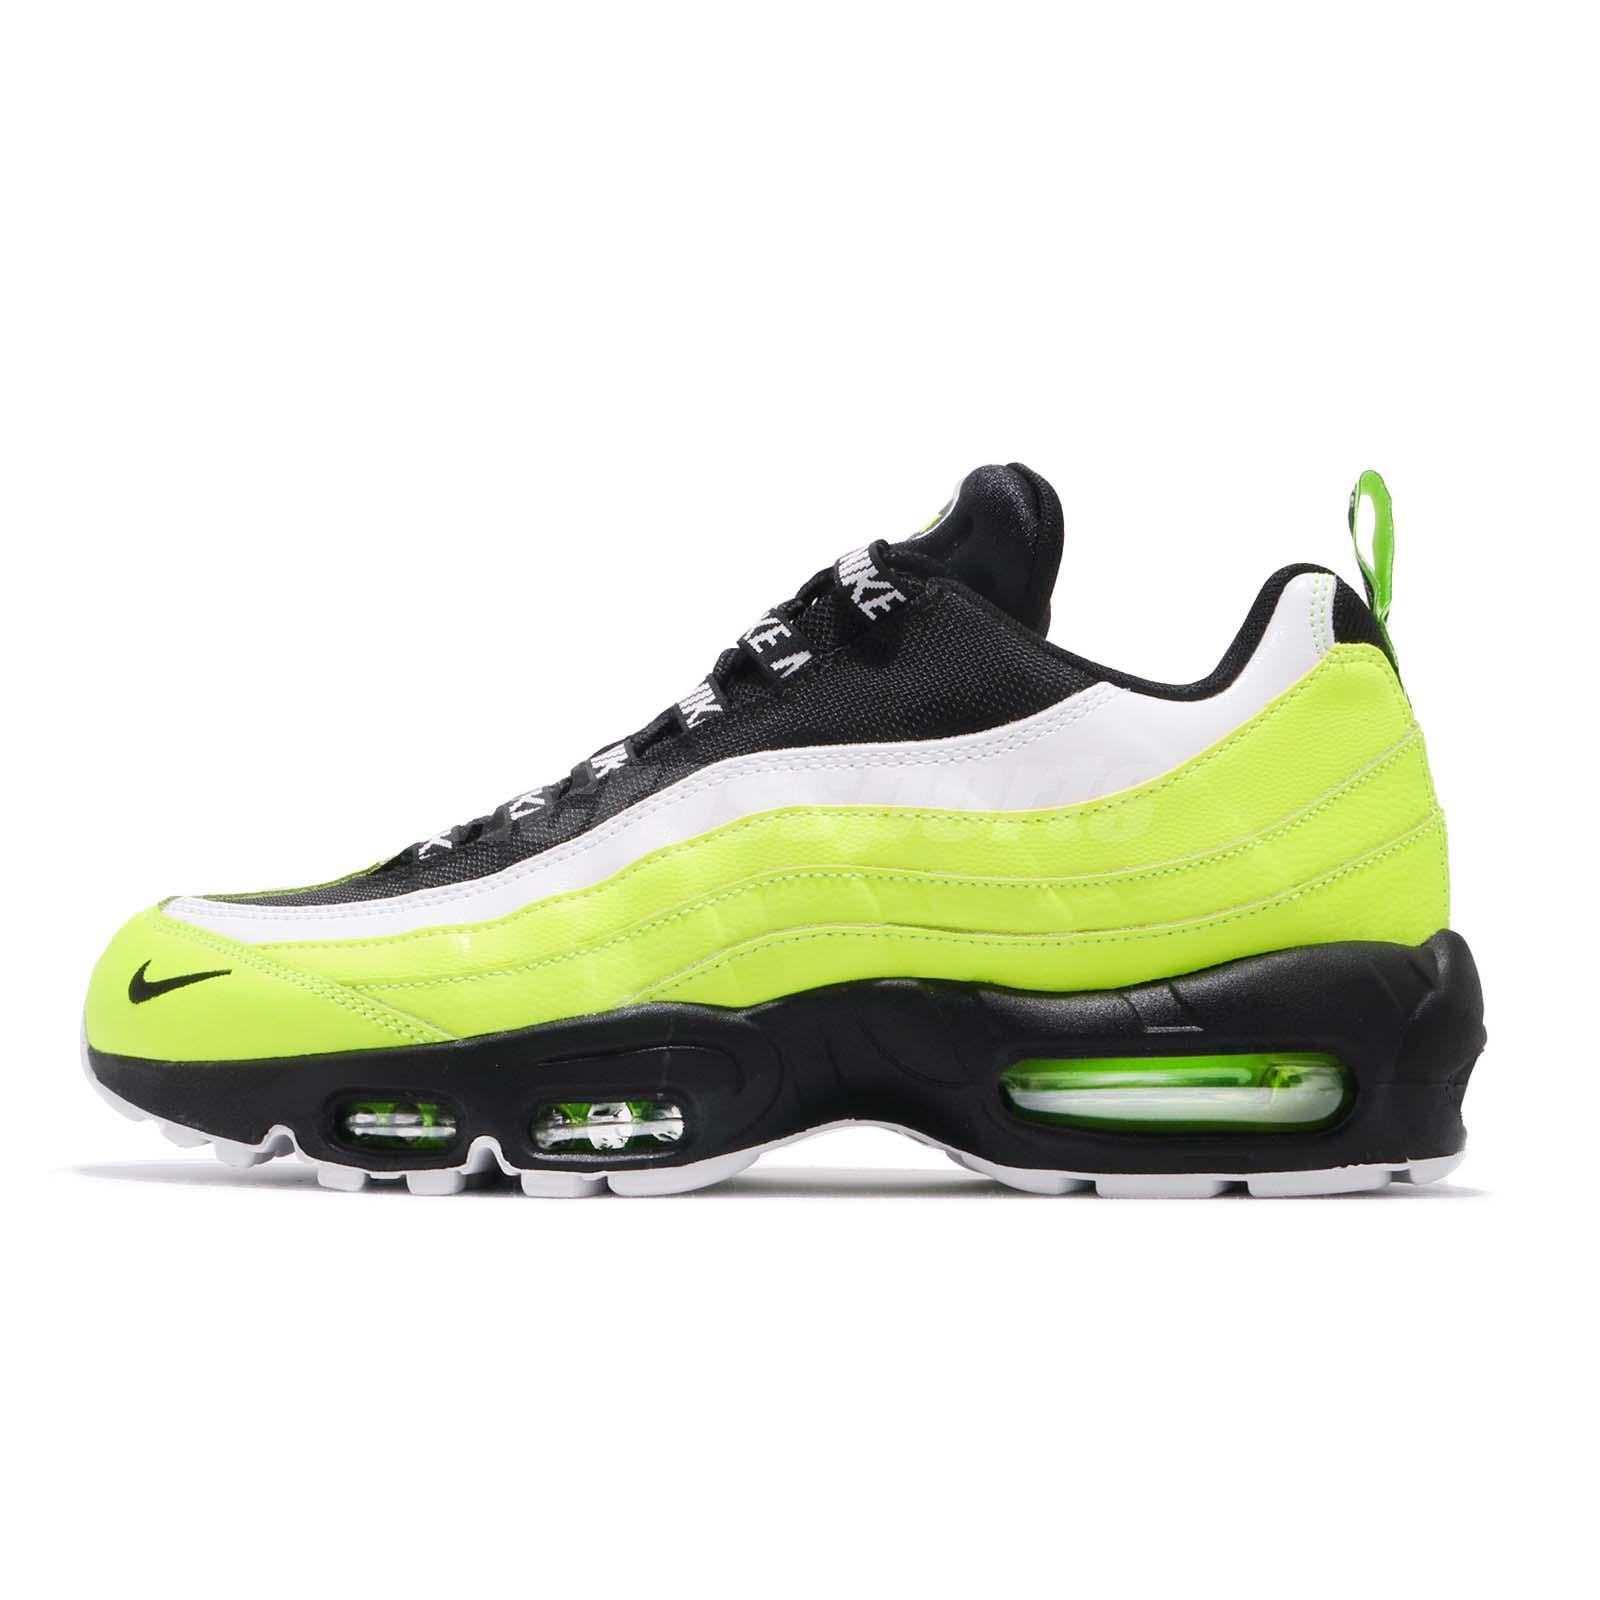 98a0bac6838a Nike Air Max 95 PRM Volt Black Mens Running Shoes NSW Sneakers 538416-701